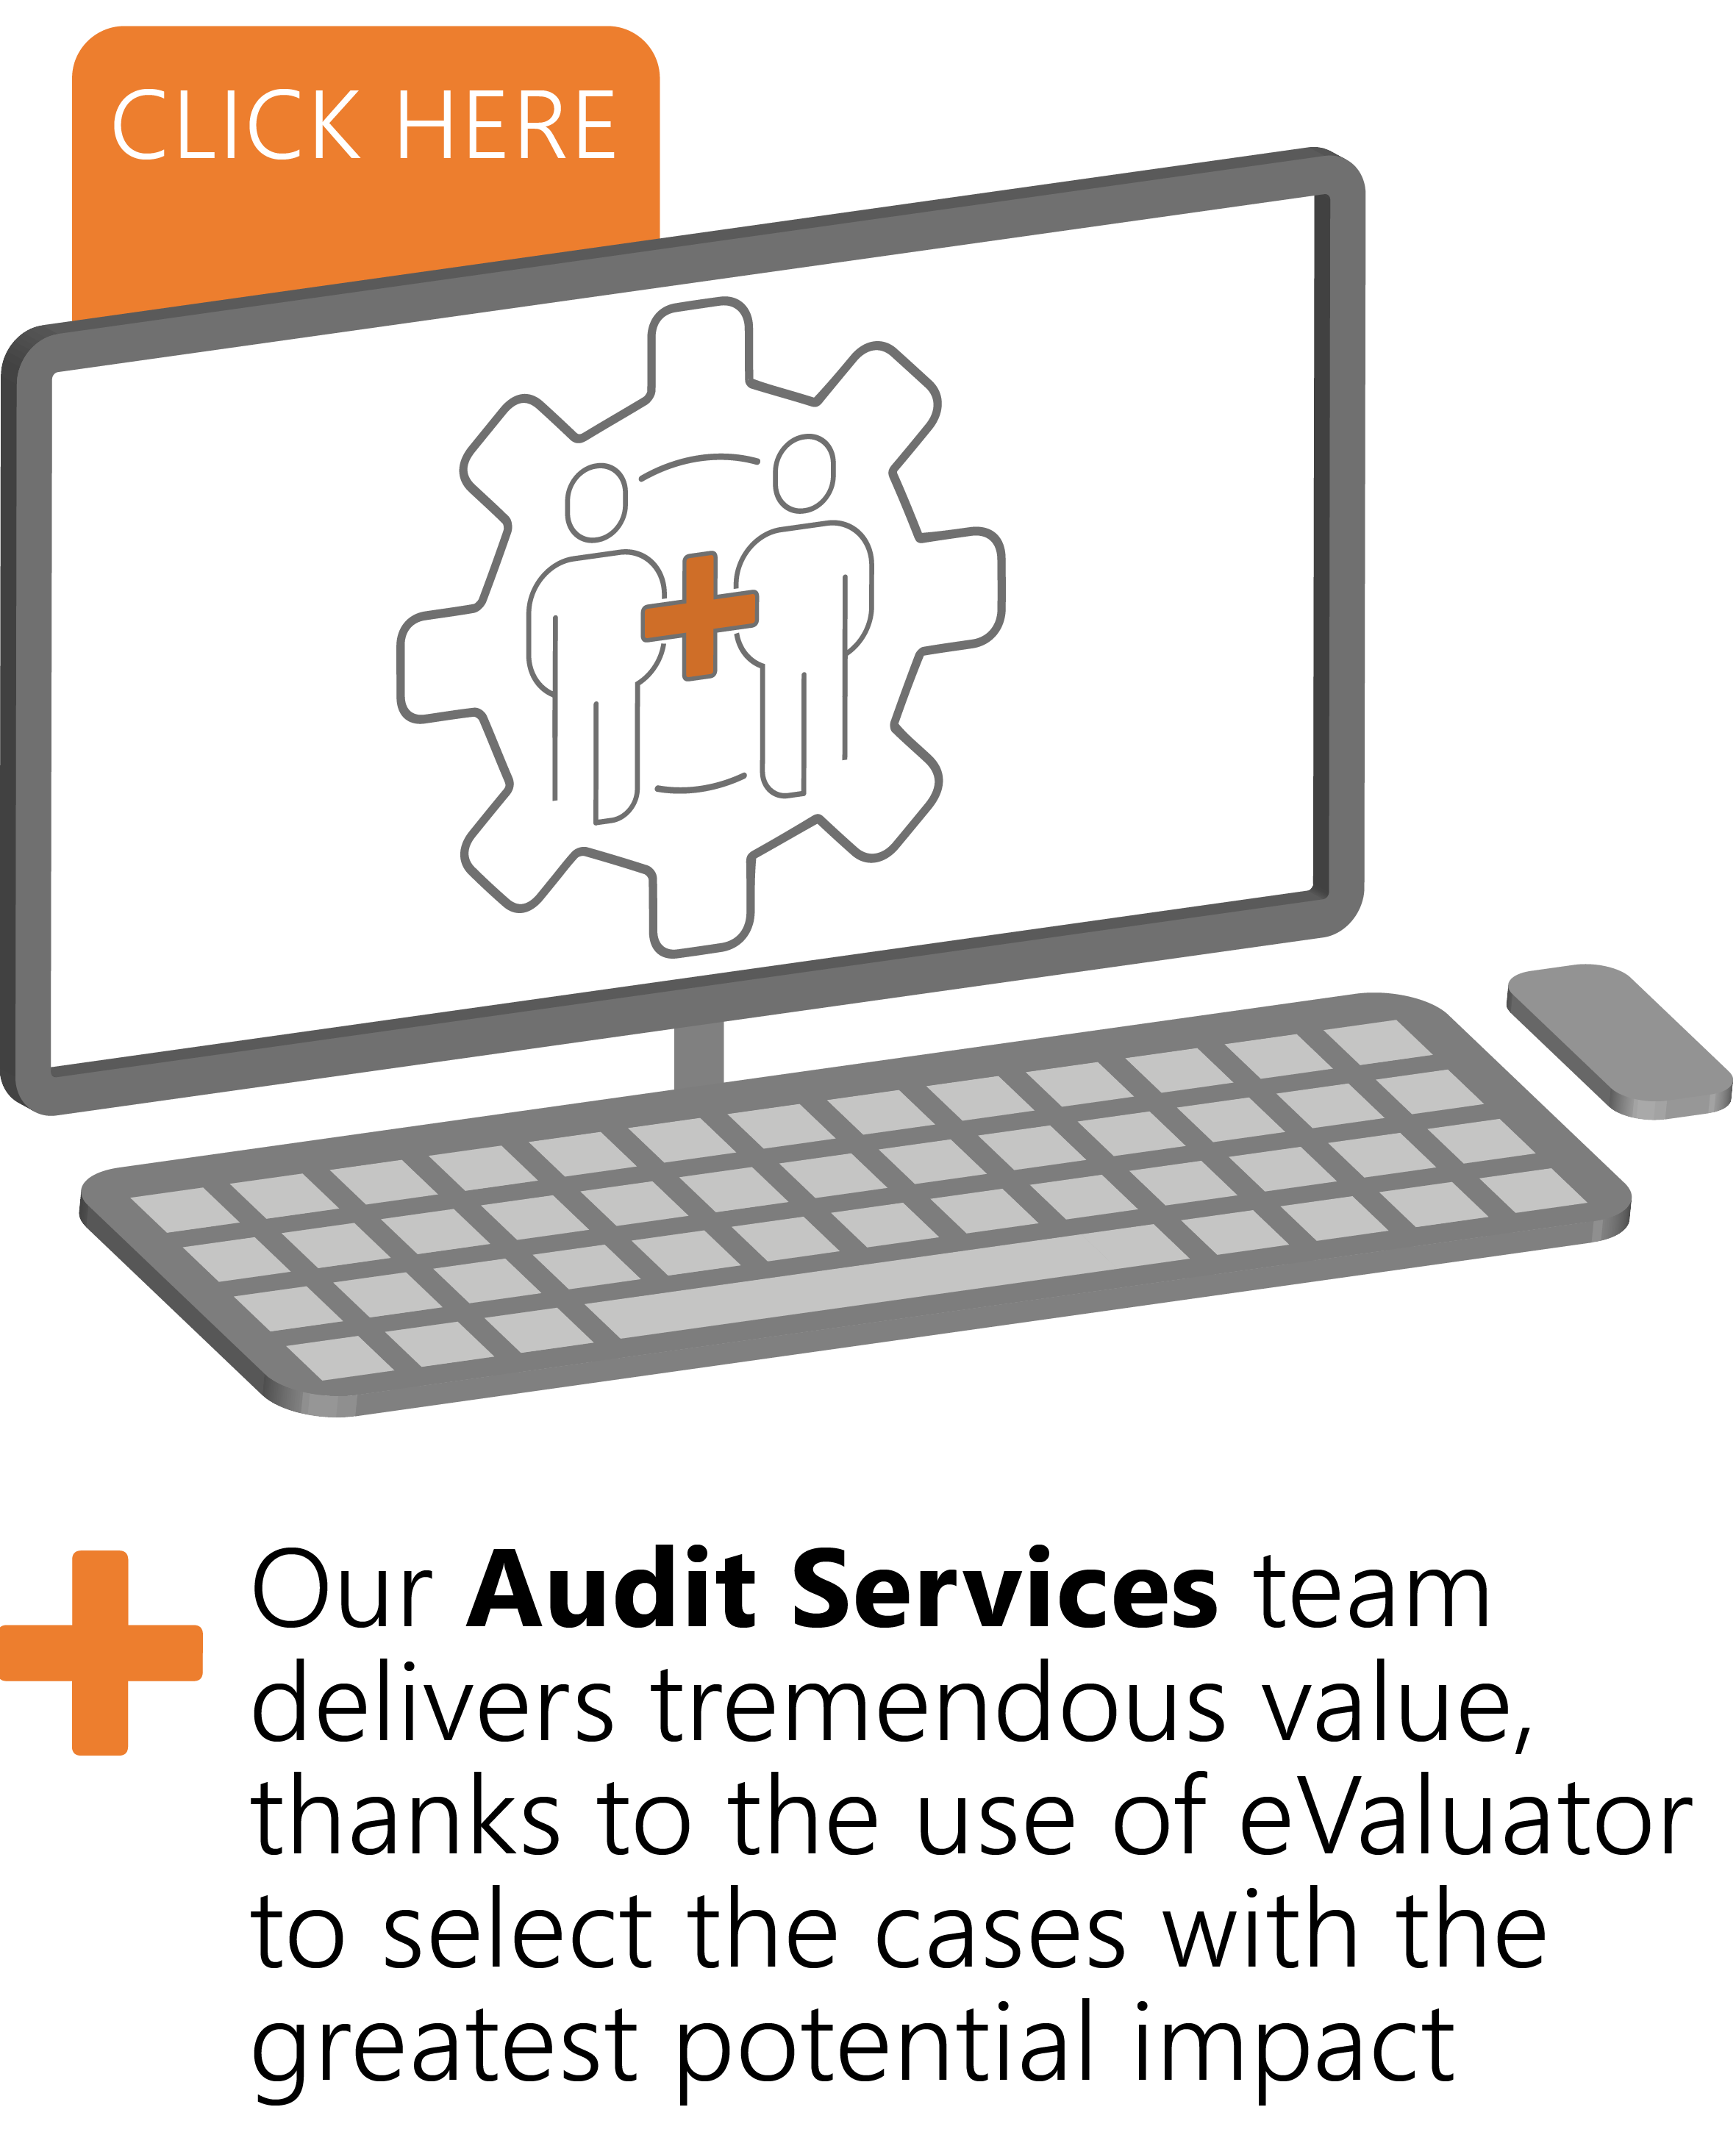 Healthcare coding audit services made possible with eValuator for revenue integrity